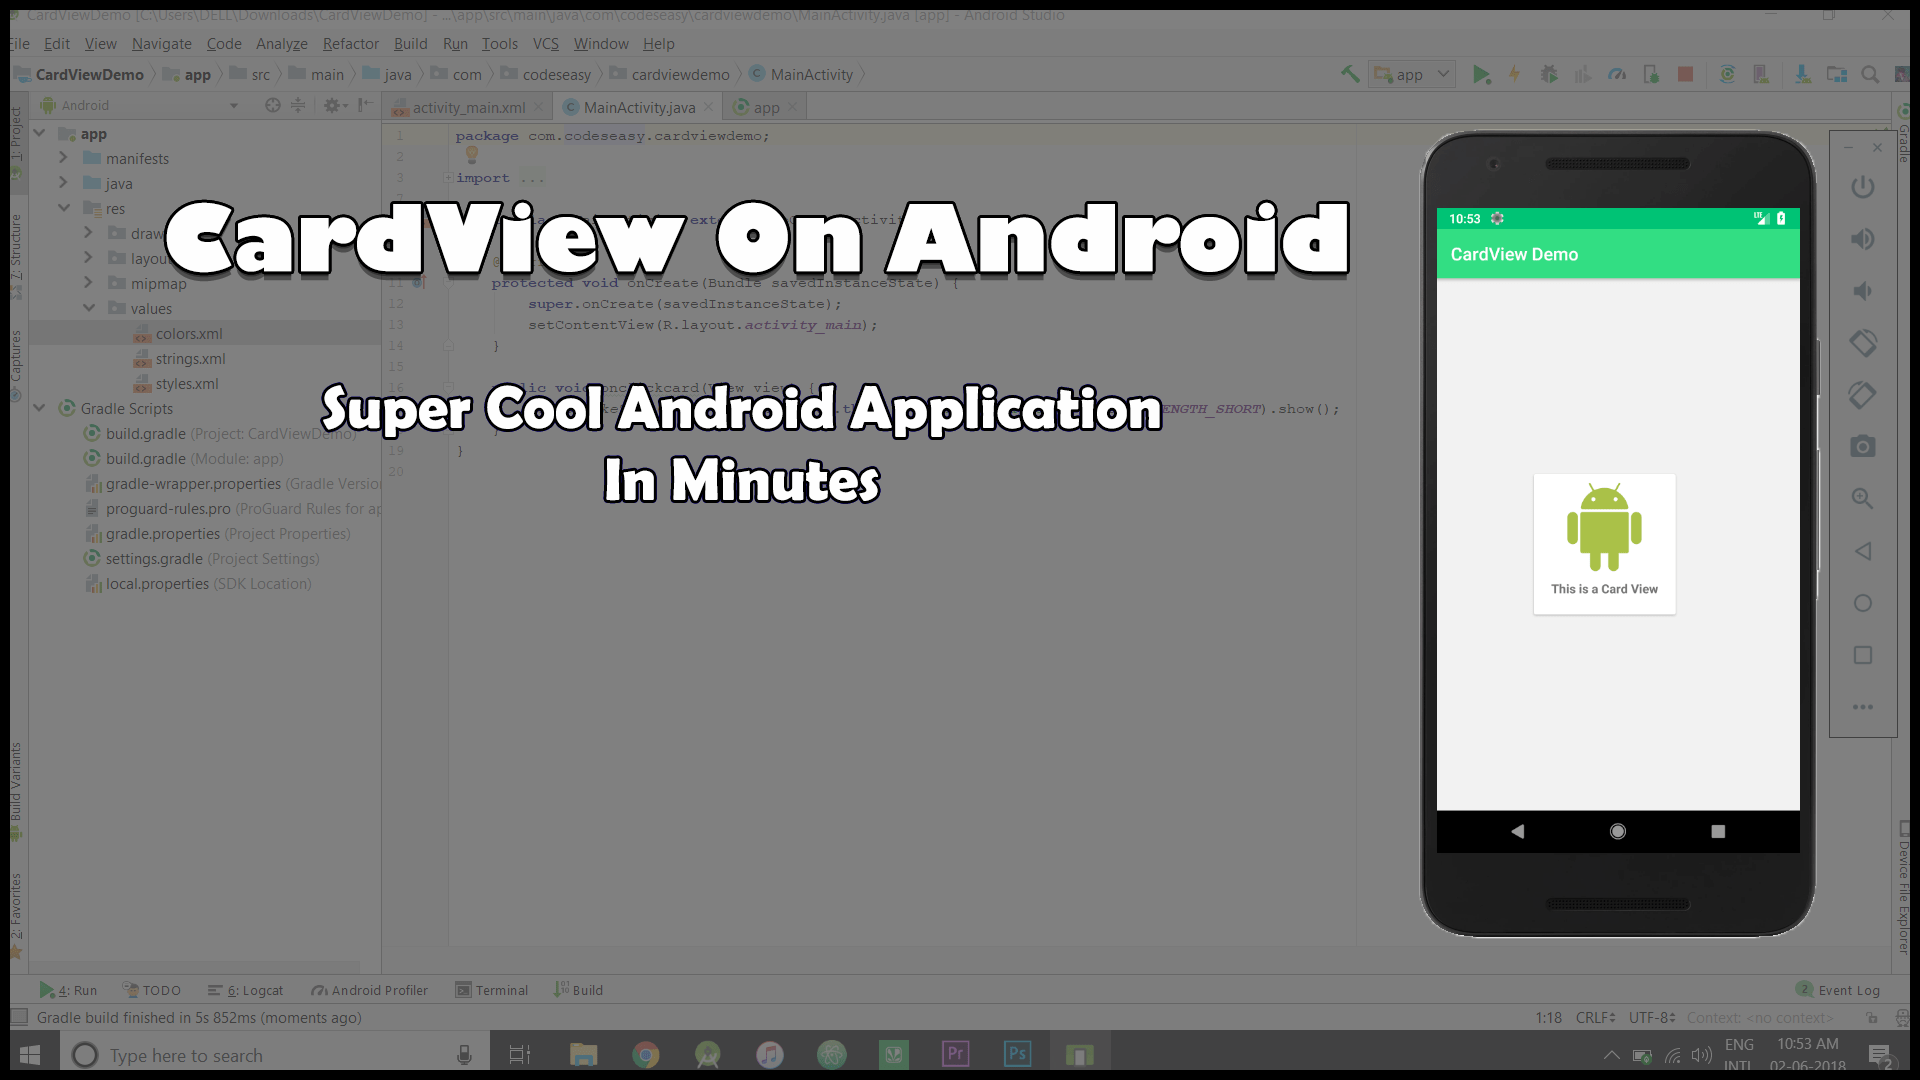 CardView-On-Android-Application